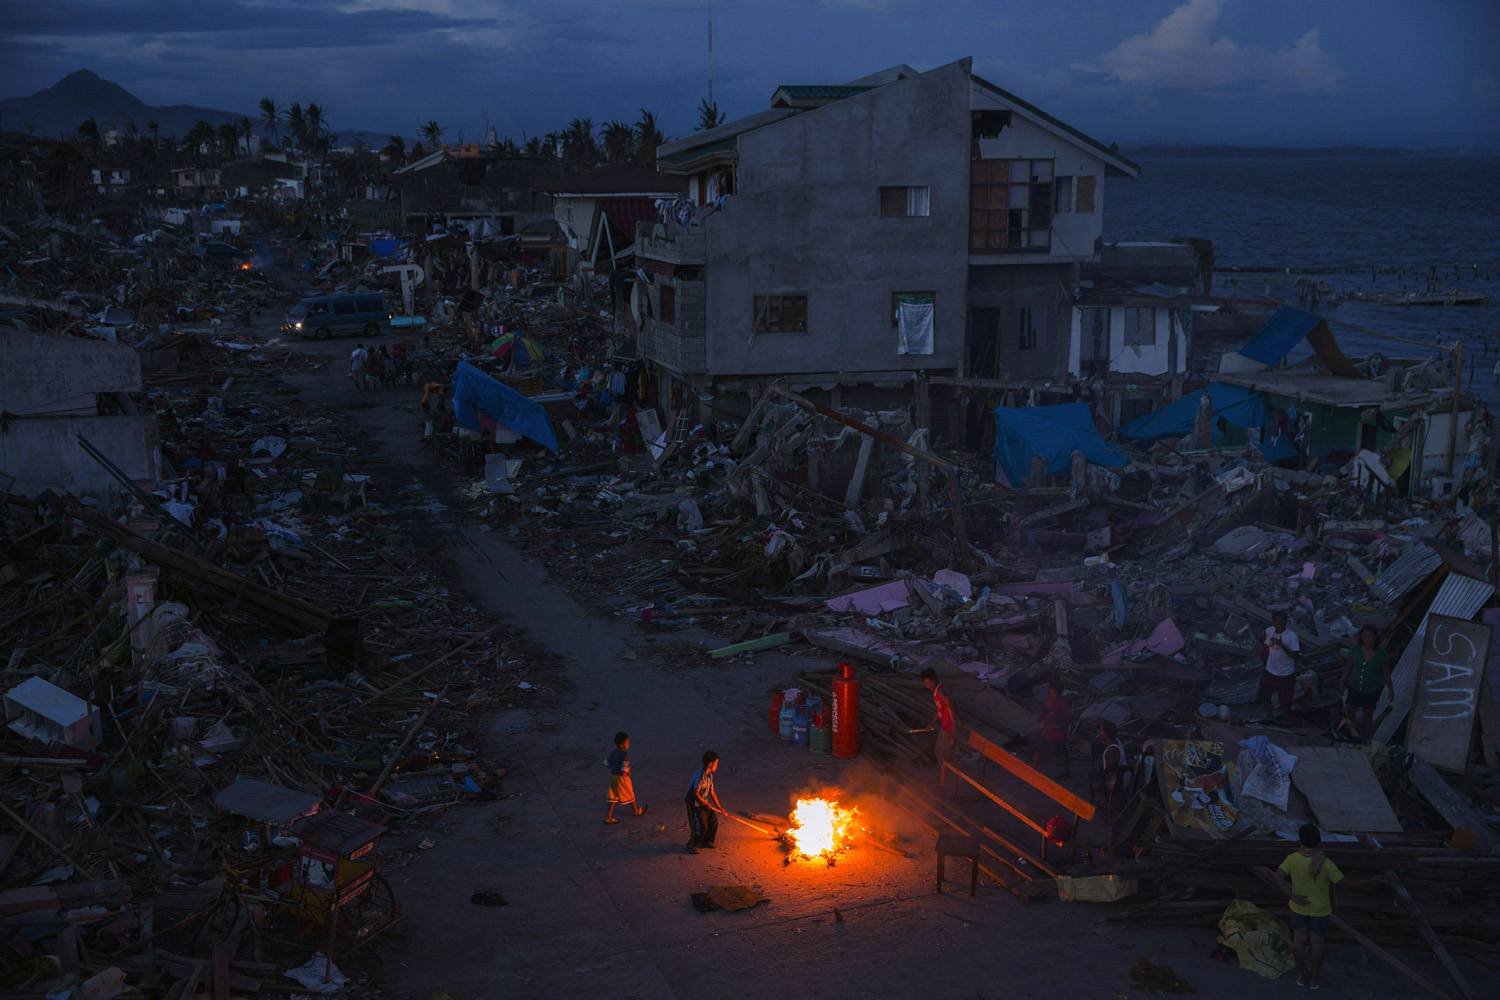 People play by a fire in a neighborhood destroyed by Typhoon Haiyan in Tacloban, The Philippines, on Nov. 16, 2013.